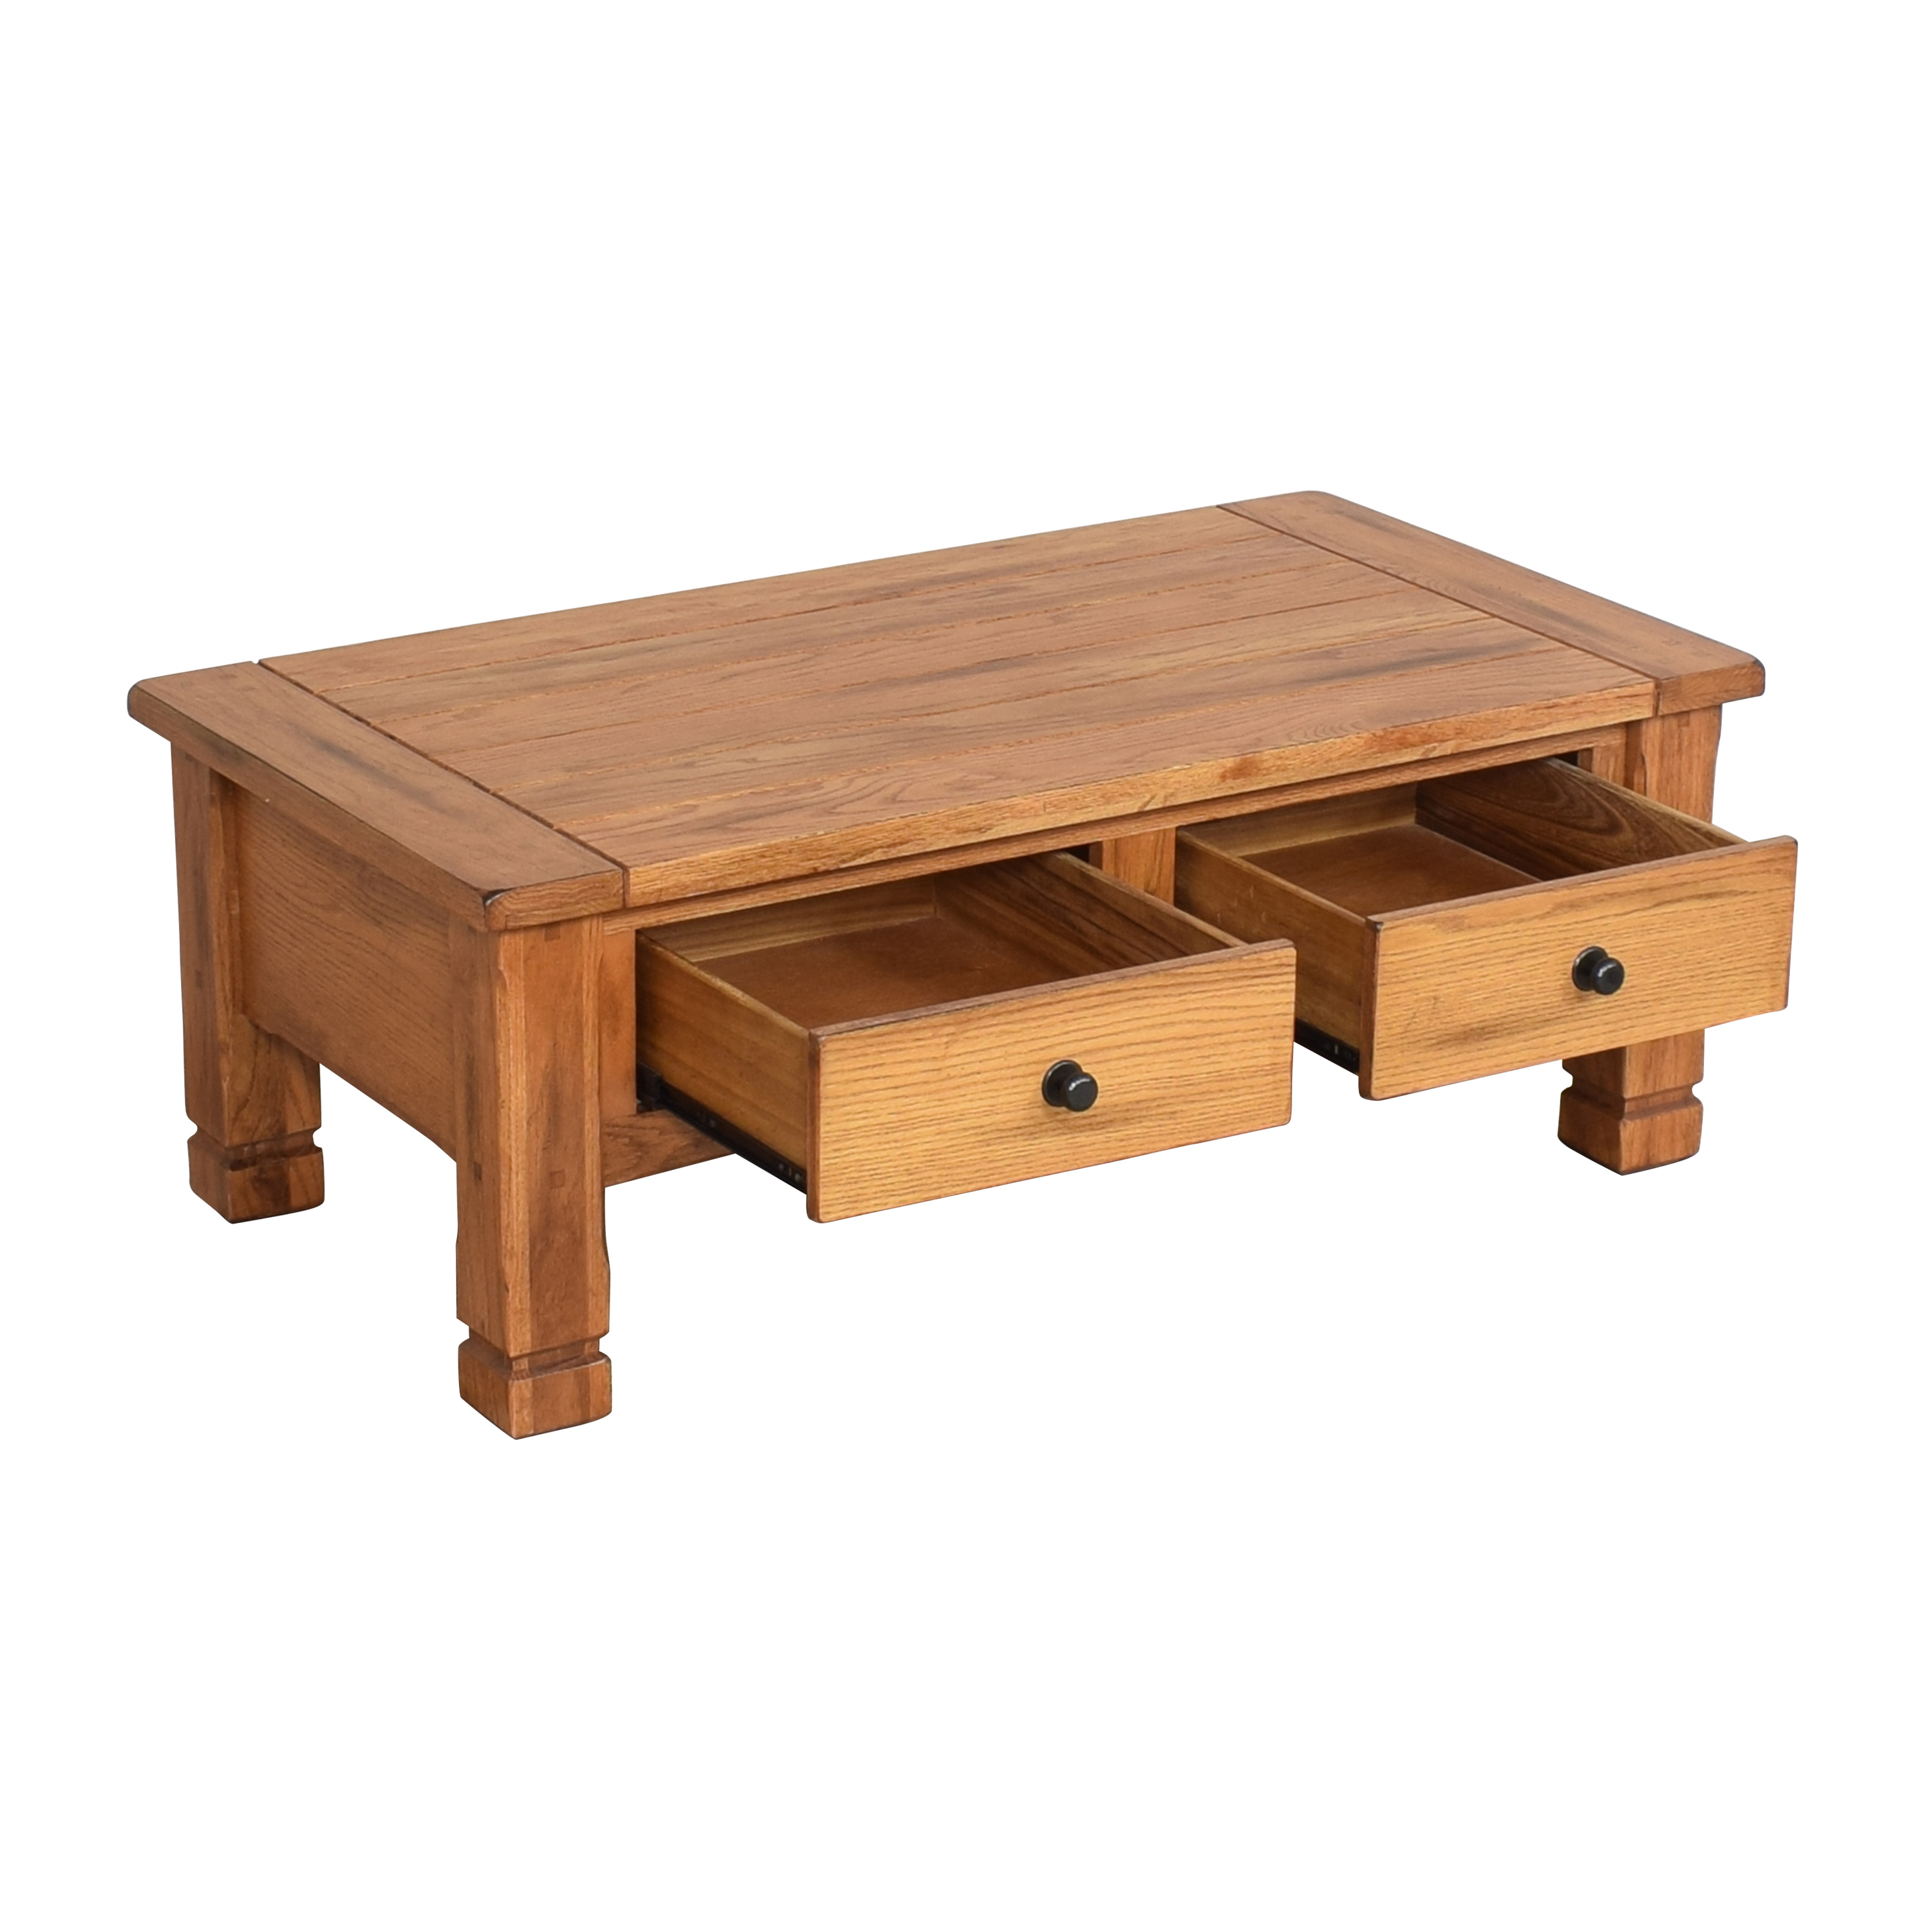 Raymour & Flanigan Two Drawer Coffee Table / Coffee Tables